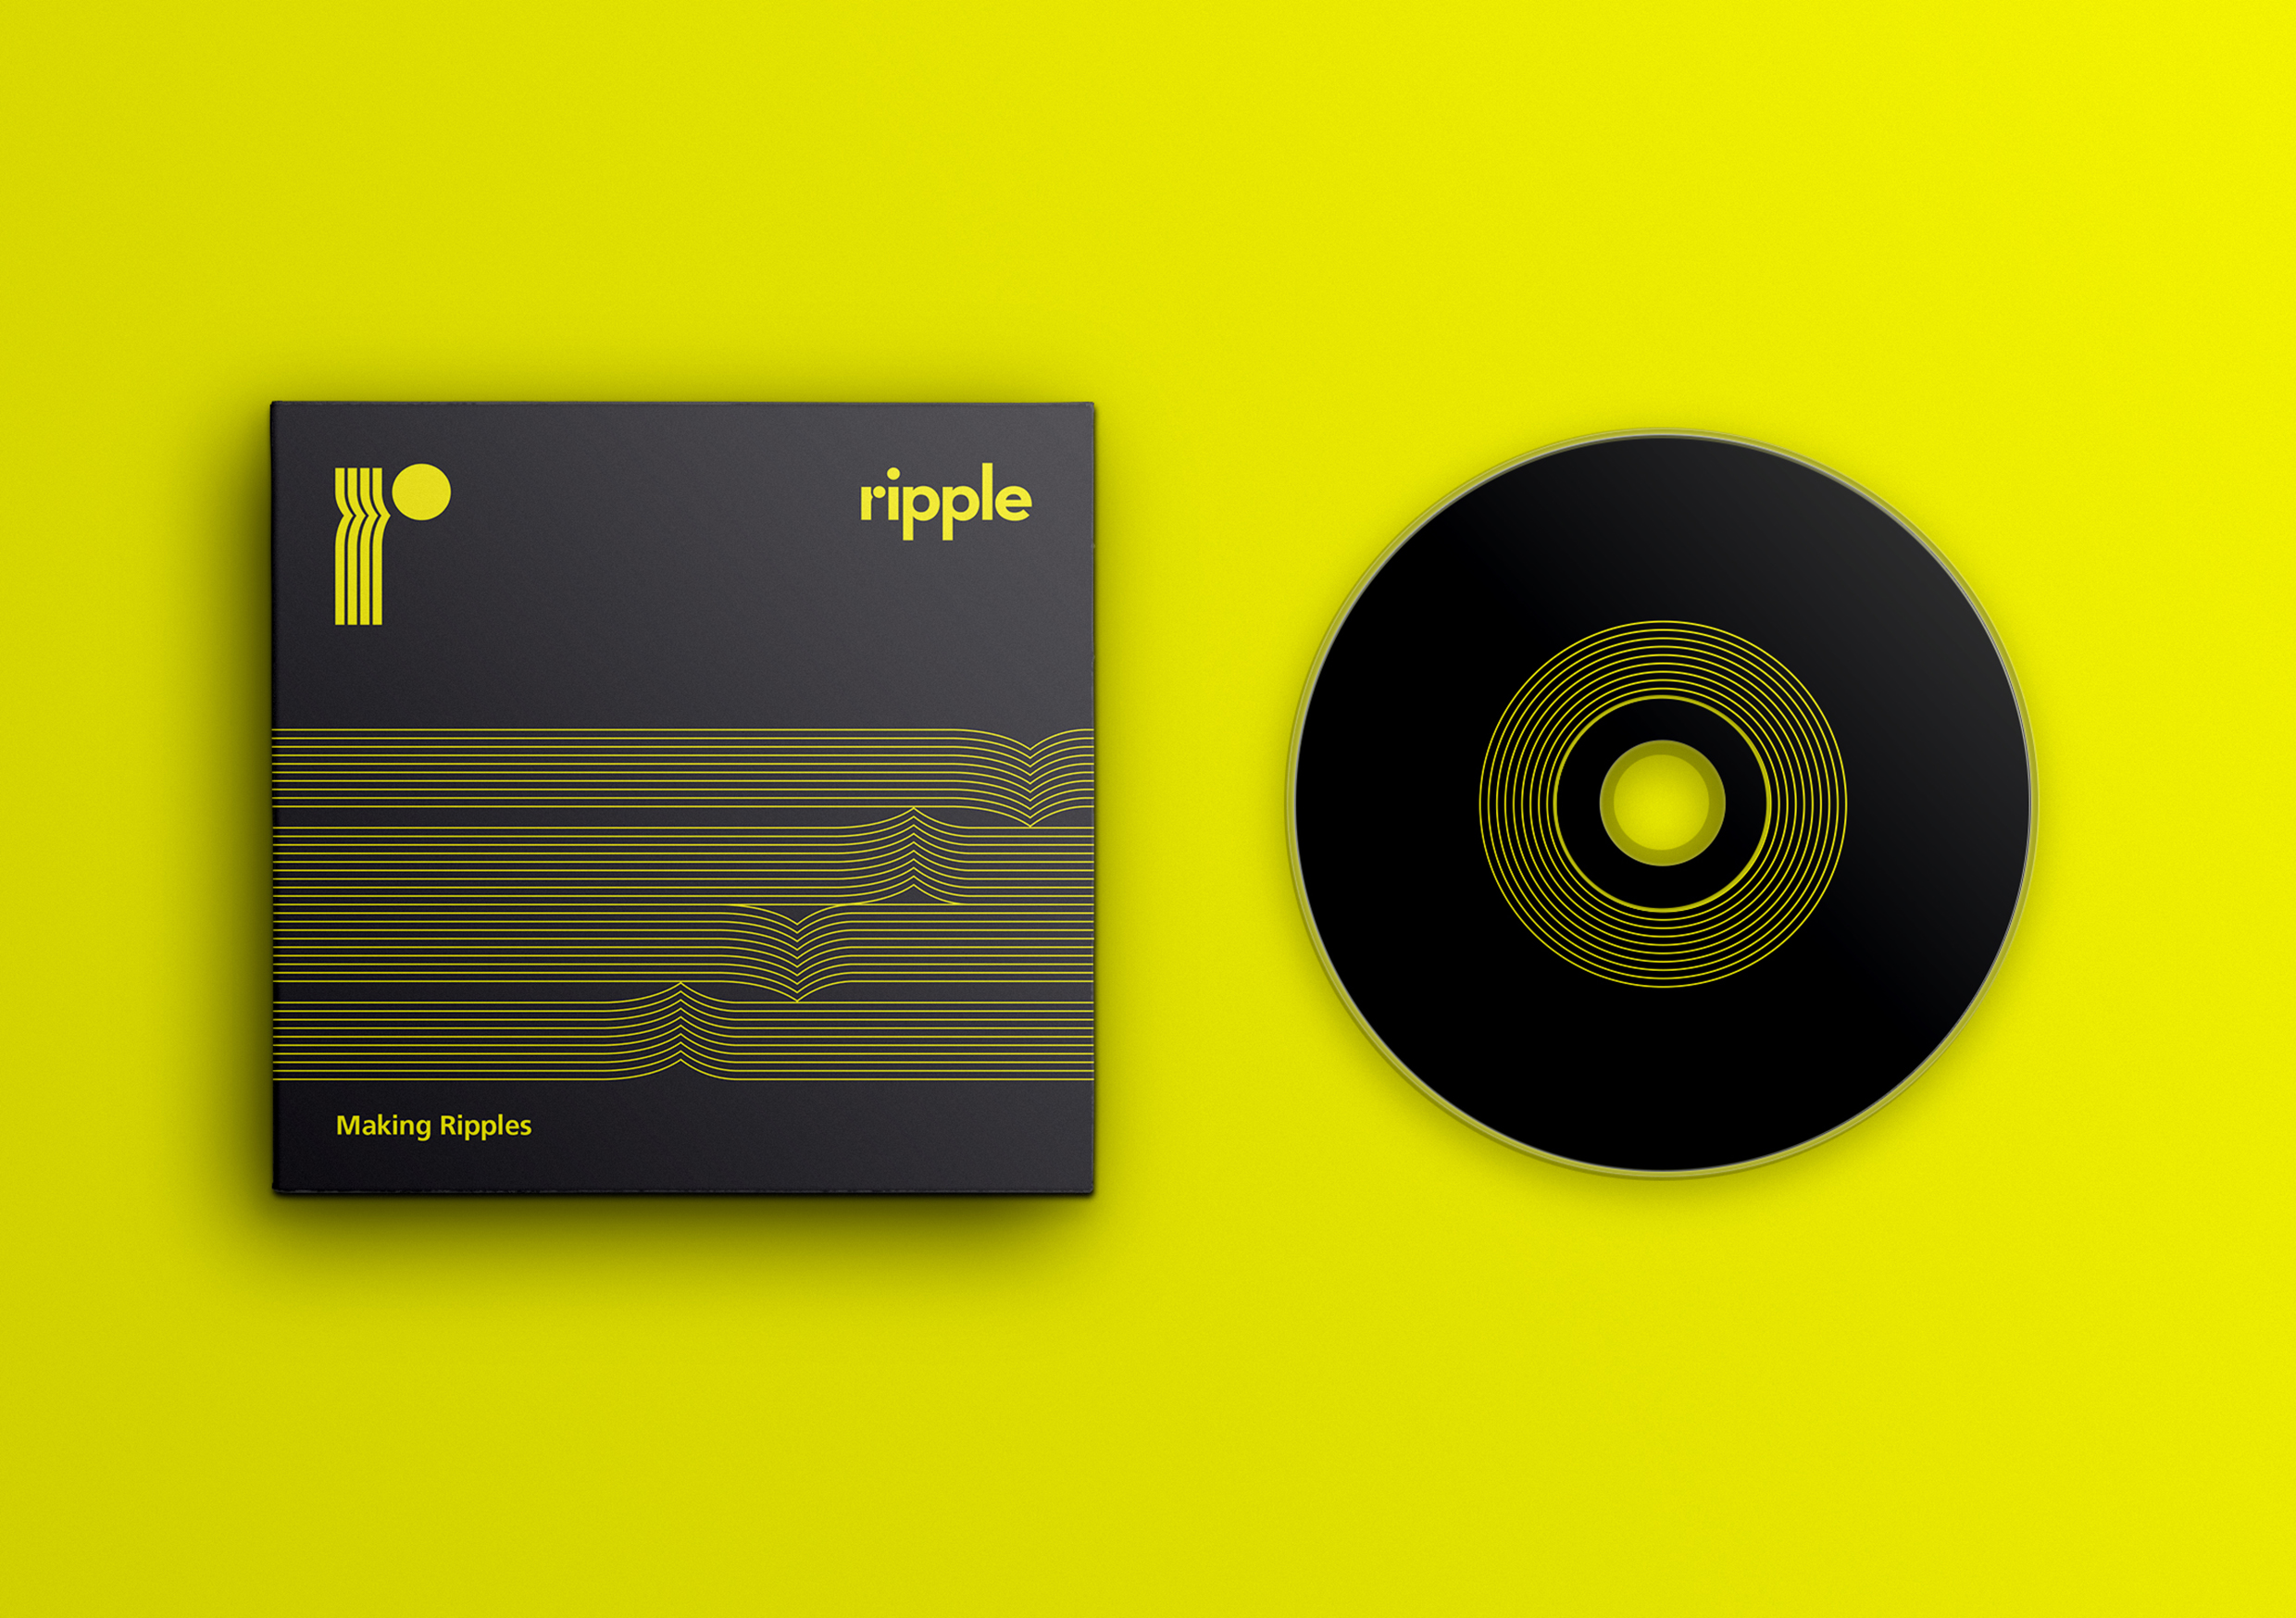 Ripple disc and cover